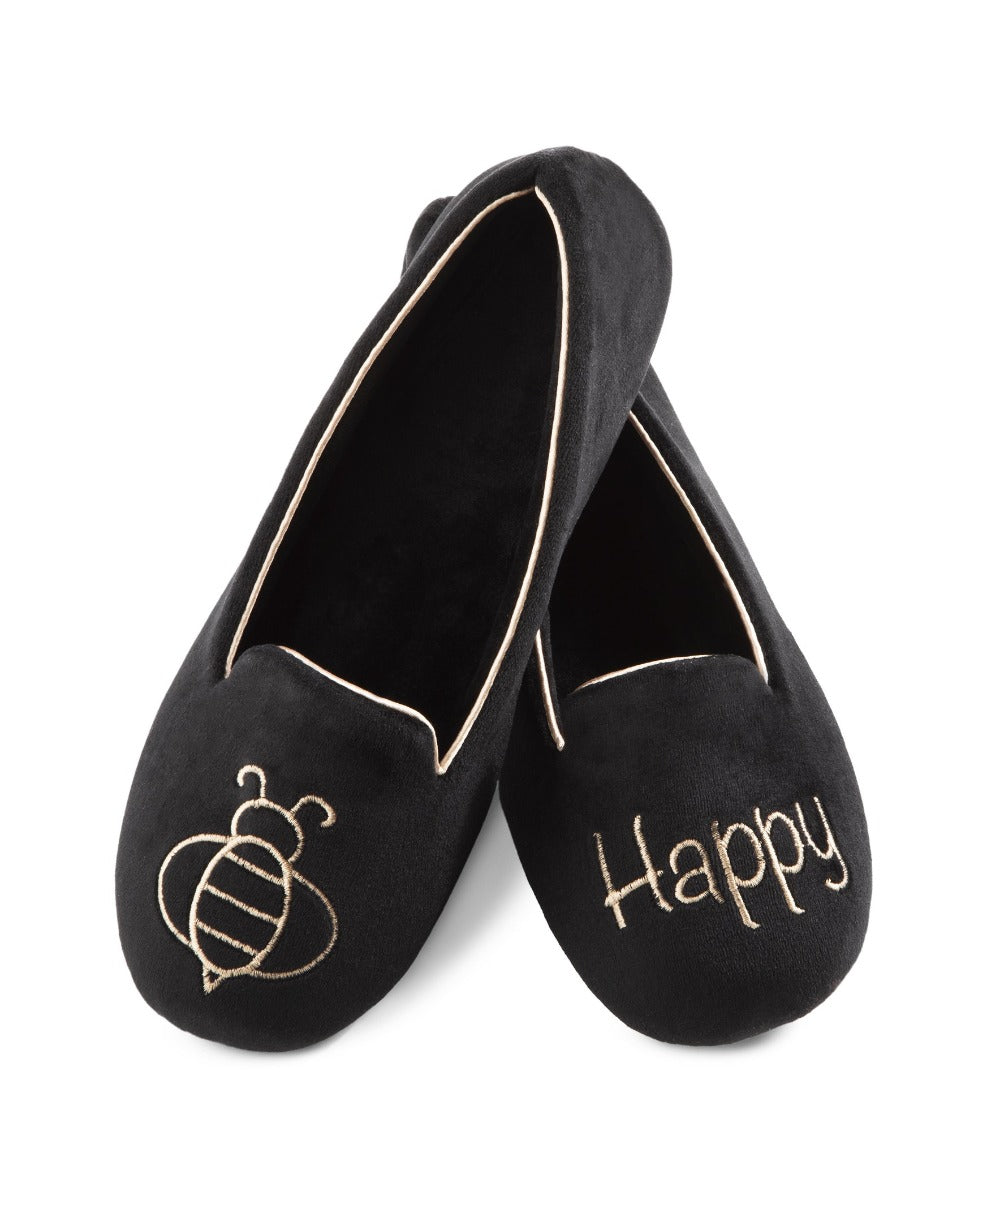 "Women's Velour Conversational Smoking Slippers Pair in Black one slipper has an illustration of a Bee the other says ""Happy"""